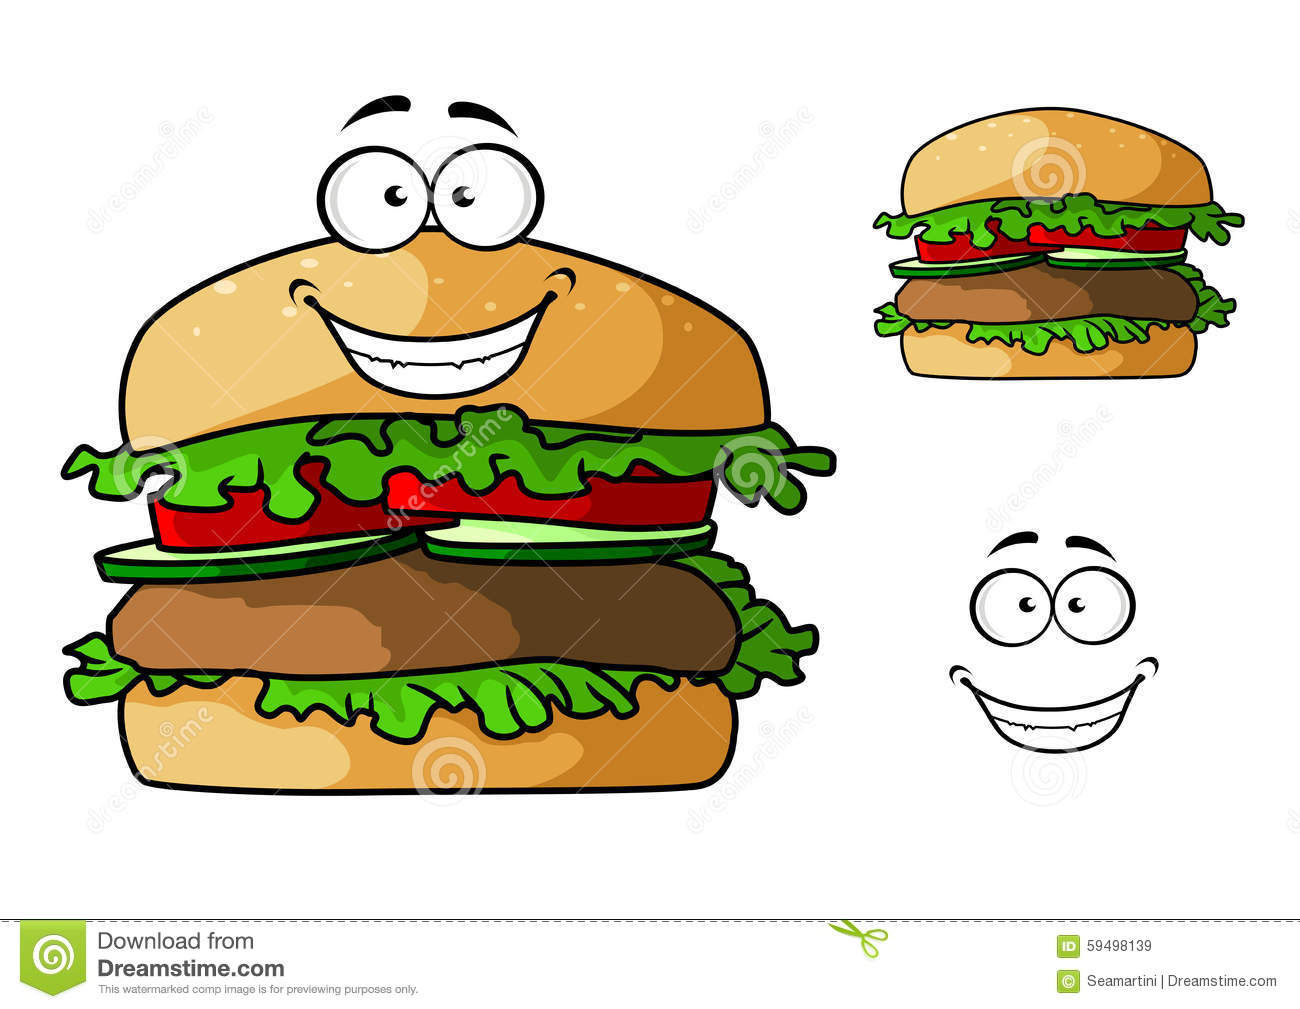 Cartoon hamburger fast food cartoon fast food cartoon cartoon pictures - Cartoon Fast Food Hamburger Character Stock Vector Image